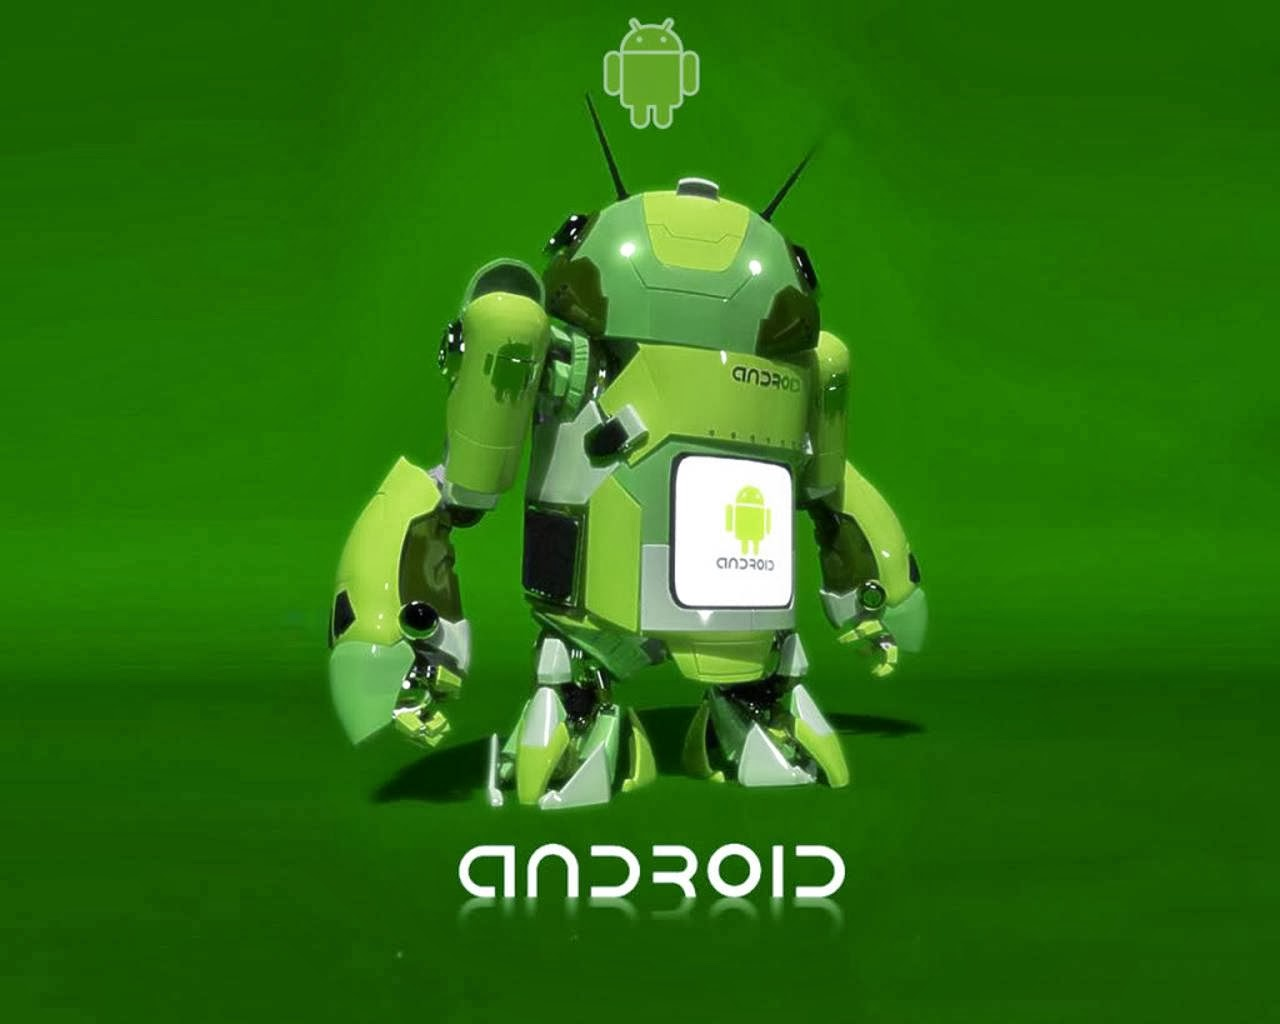 Android Wallpaper 3D